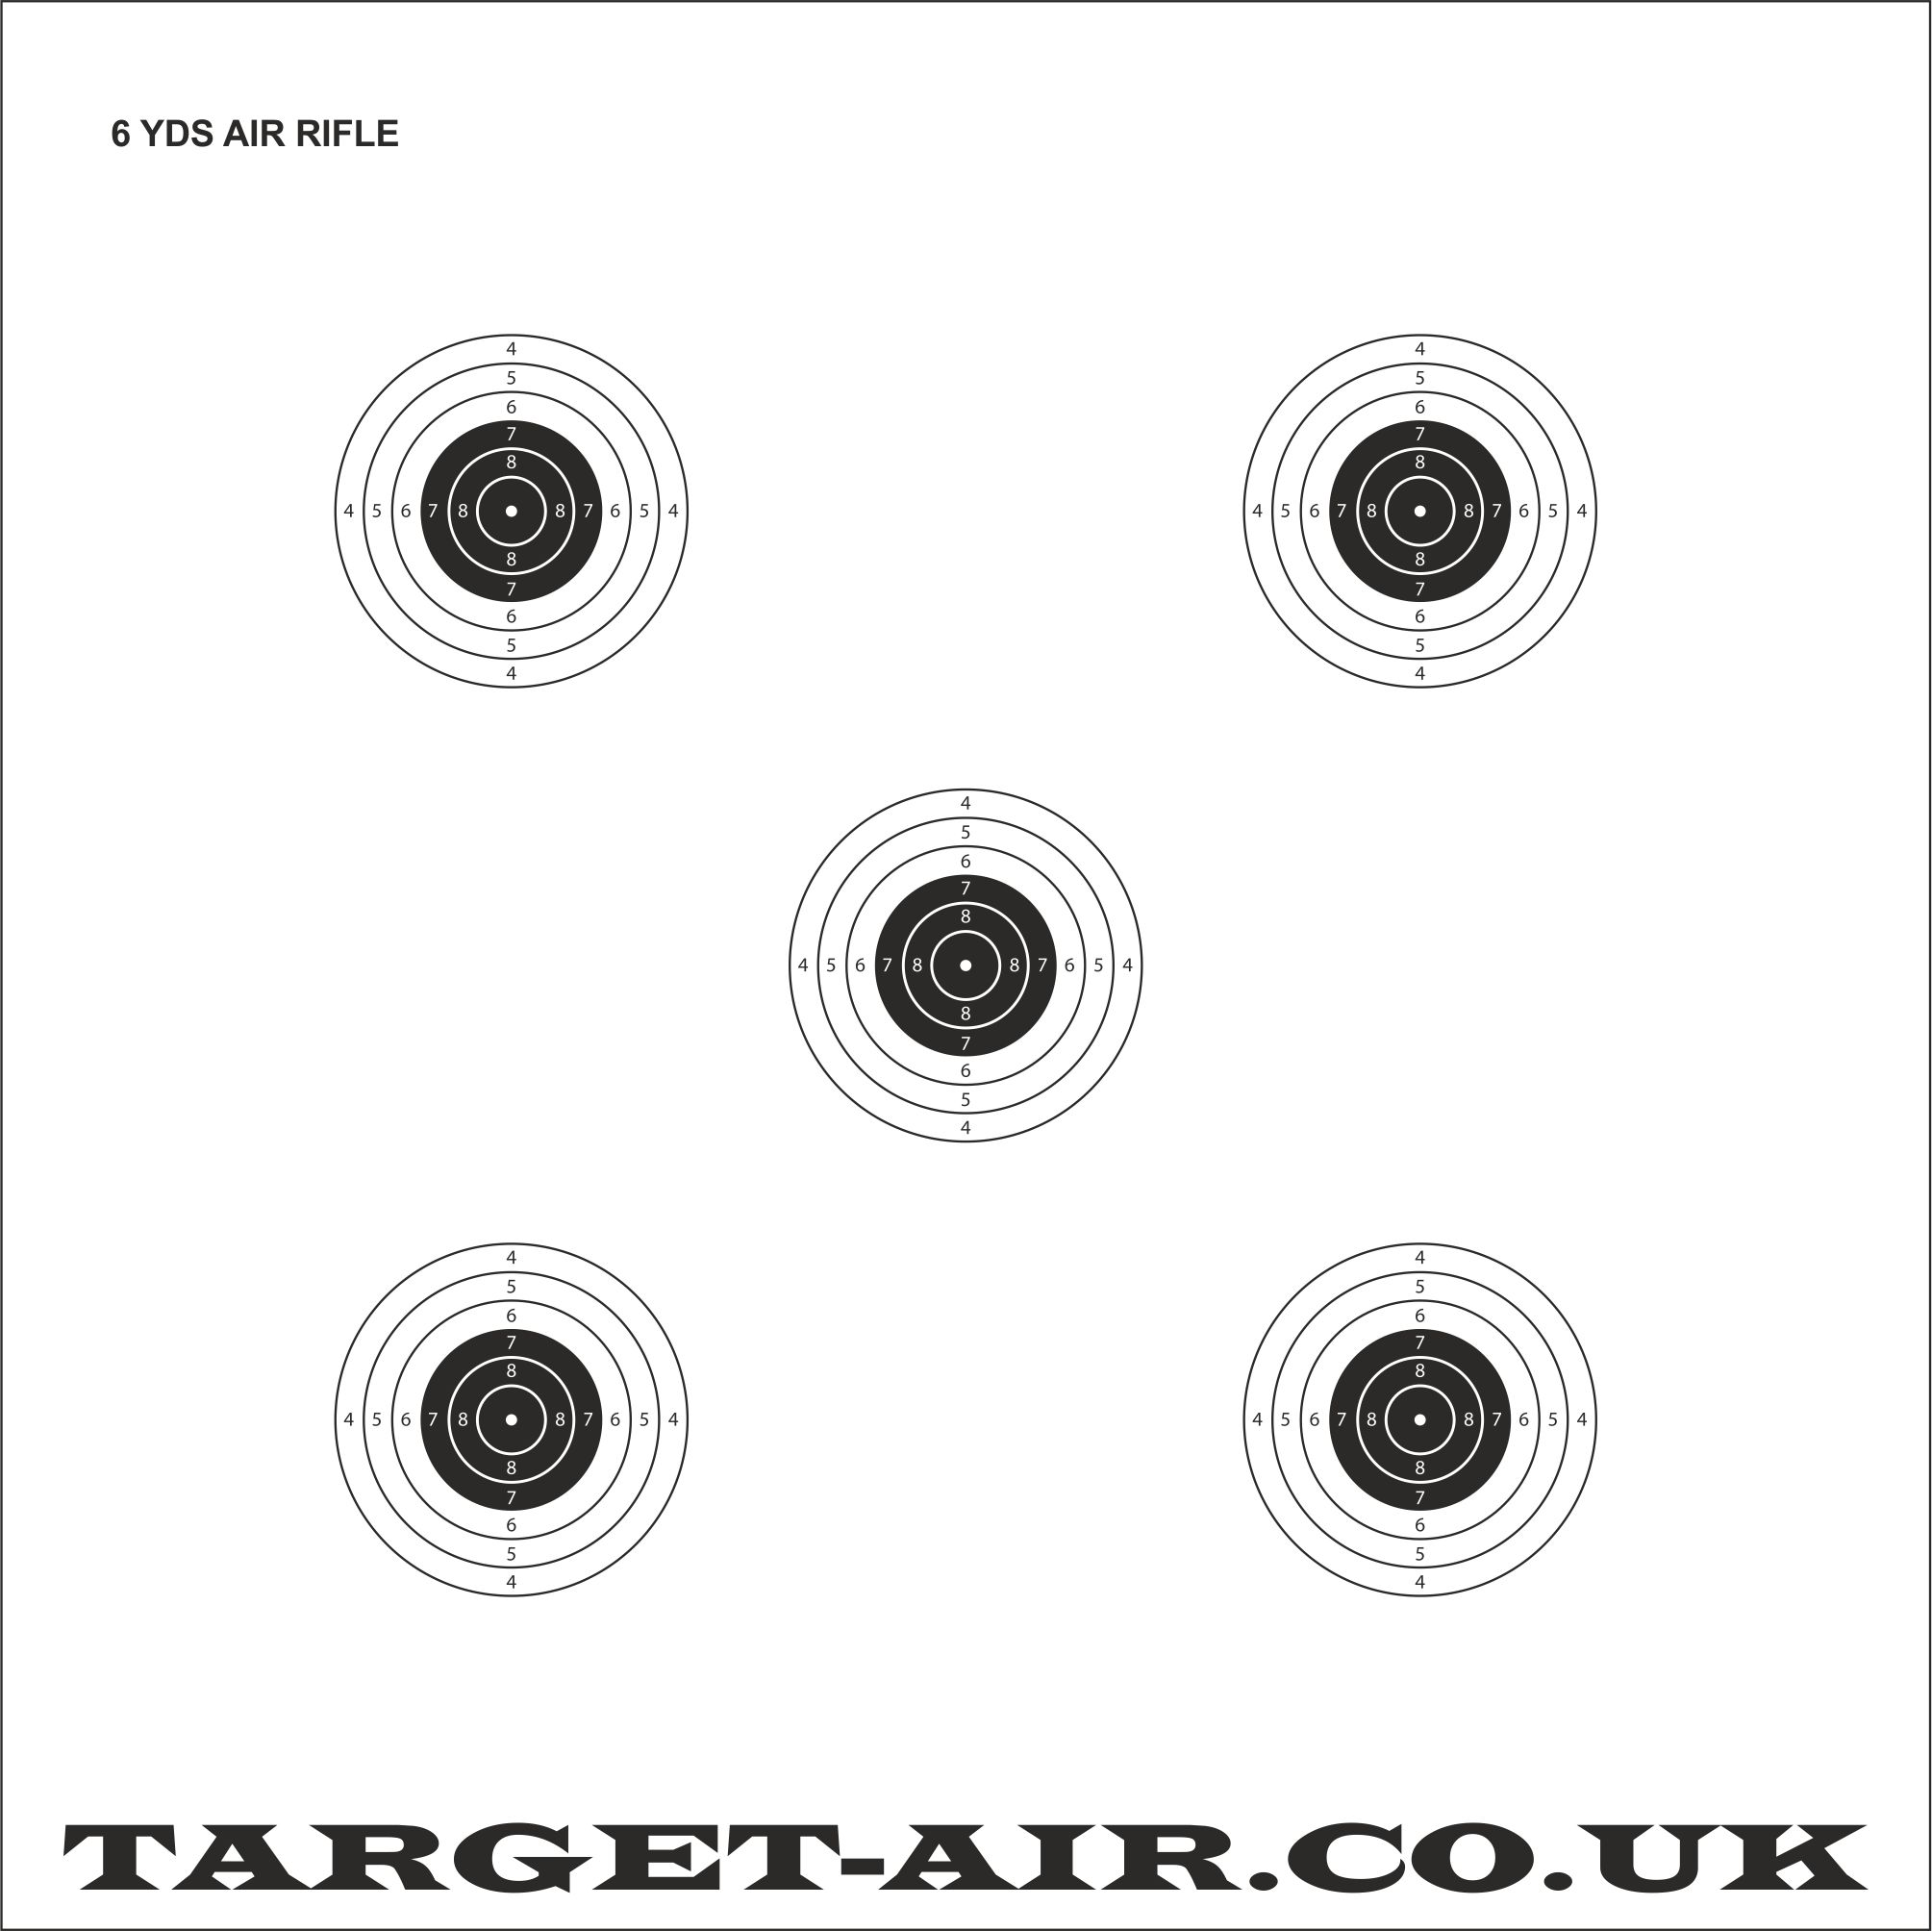 6 Yards Air Rifle Nsra